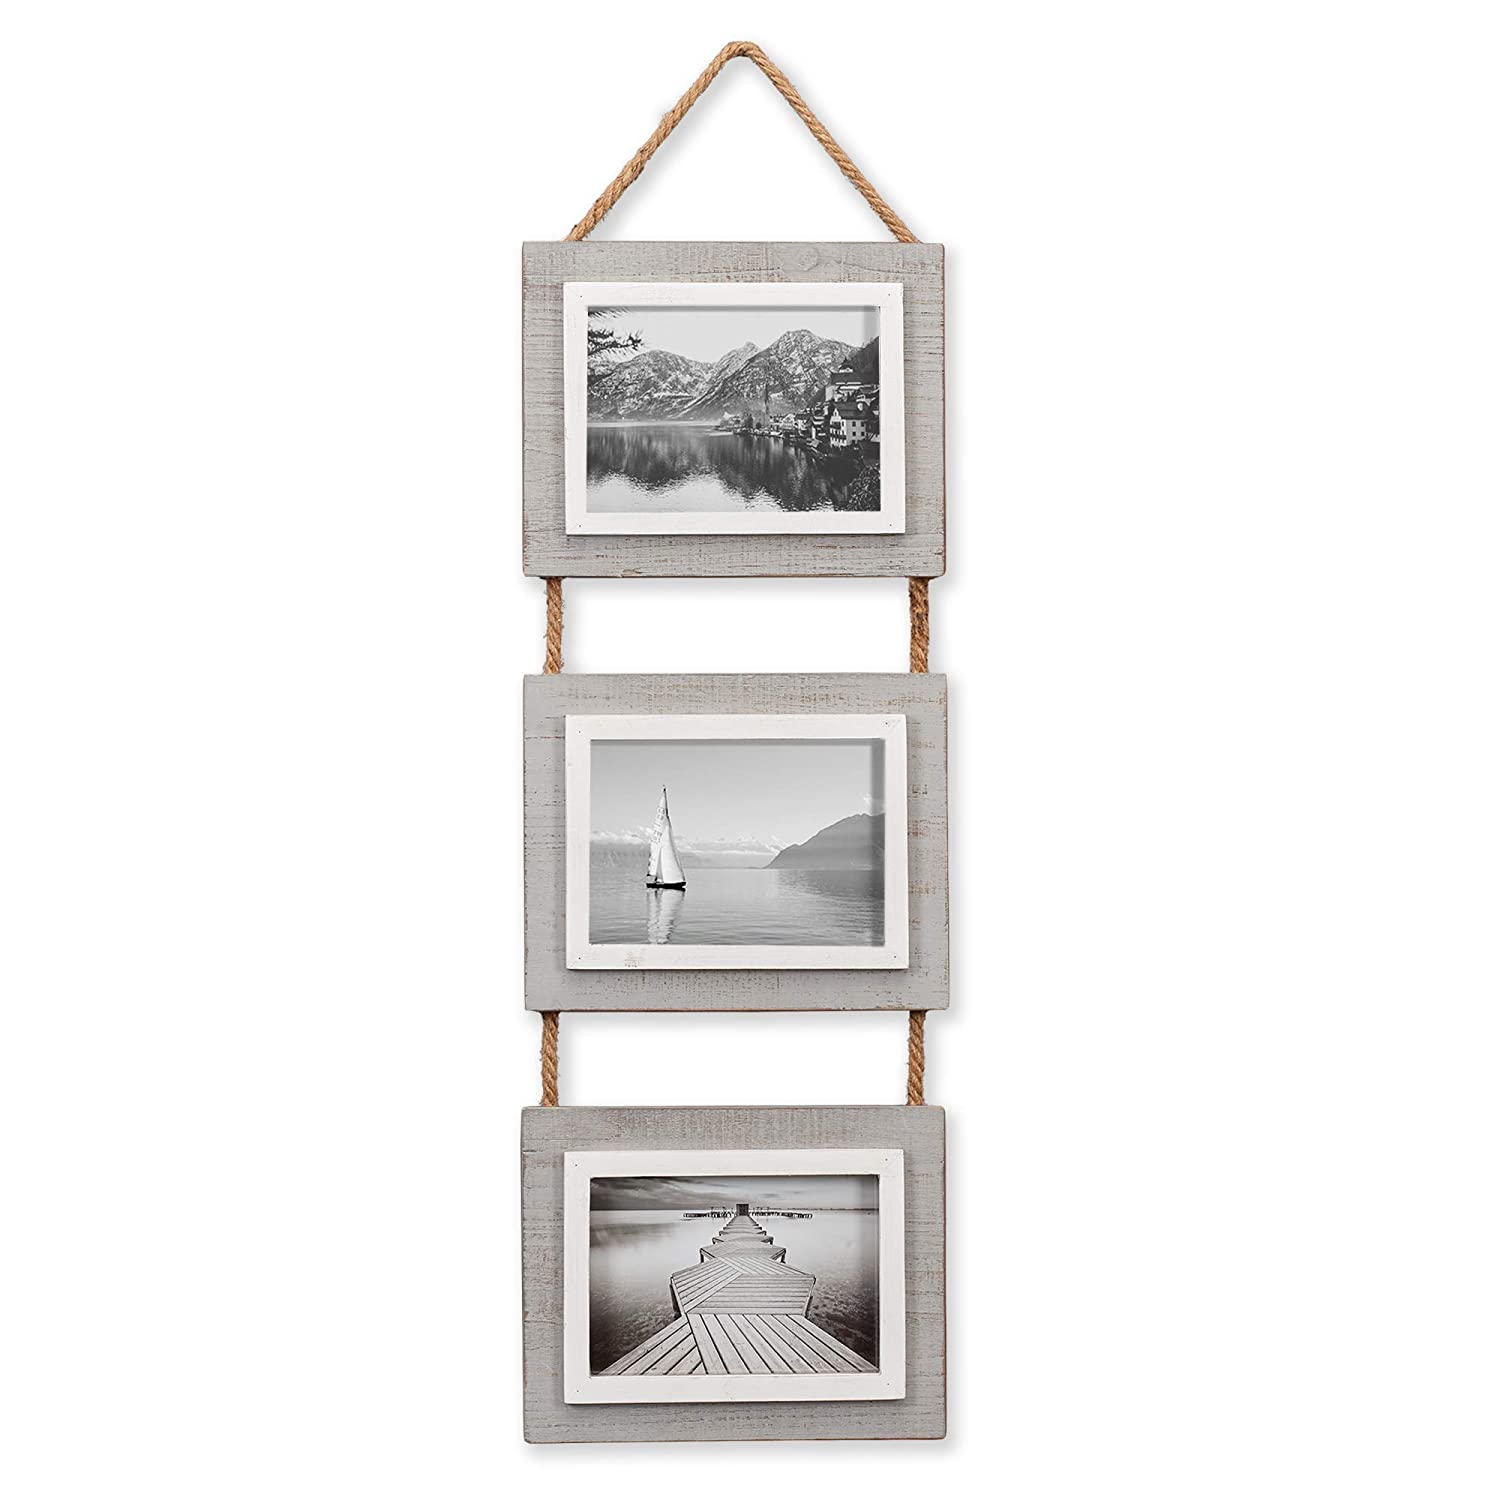 """Barnyard Designs Rustic Hanging Picture Frame Set - Vertical Wood Photo Frame Display - 3, 5"""" x 7"""" Frame Set on Hanging Rope in Weathered Wood Finish, 27"""" x 9.5"""""""